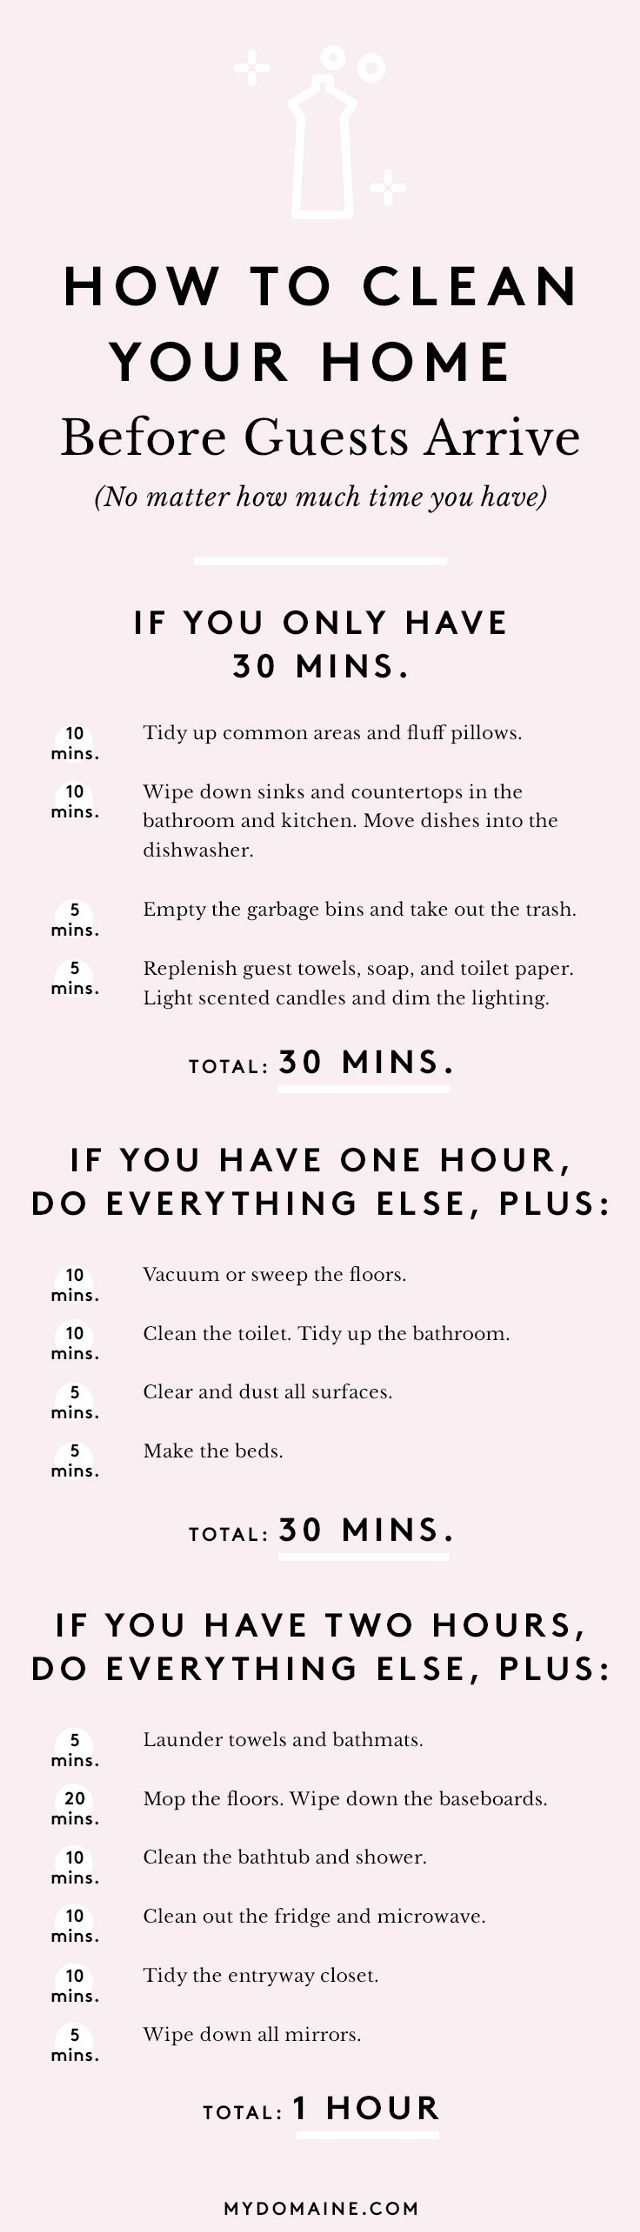 The Ultimate Guide to Cleaning Your Home in an Hour | MyDomaine